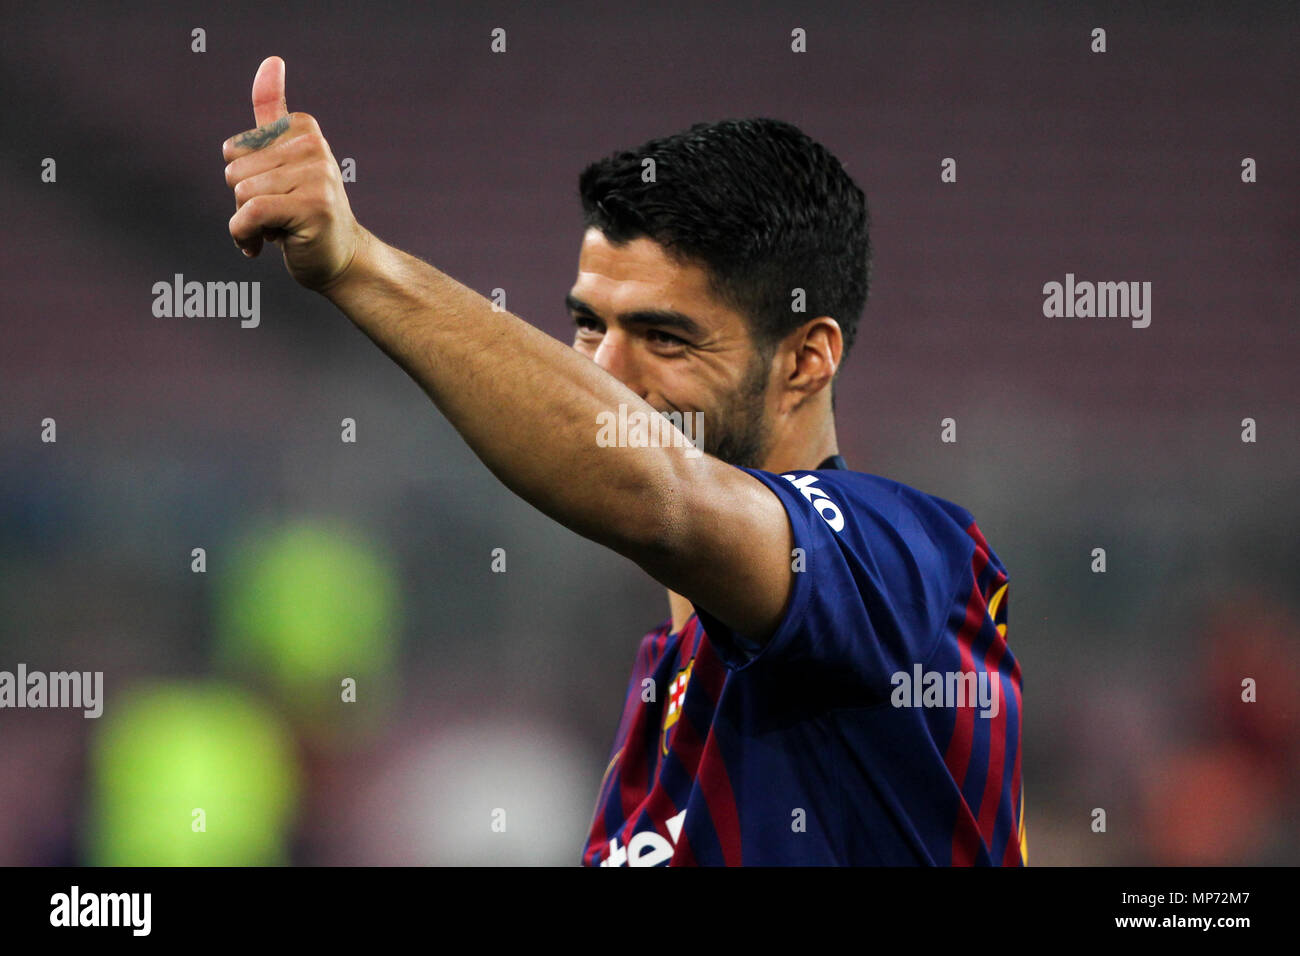 Barcelona, 20th May:  Luis Suarez of FC Barcelona during the 2017/2018 LaLiga Santander Round 38 game between FC Barcelona and Real Sociedad at Camp Nou on May 20, 2018 in Barcelona, Spain. - Stock Image